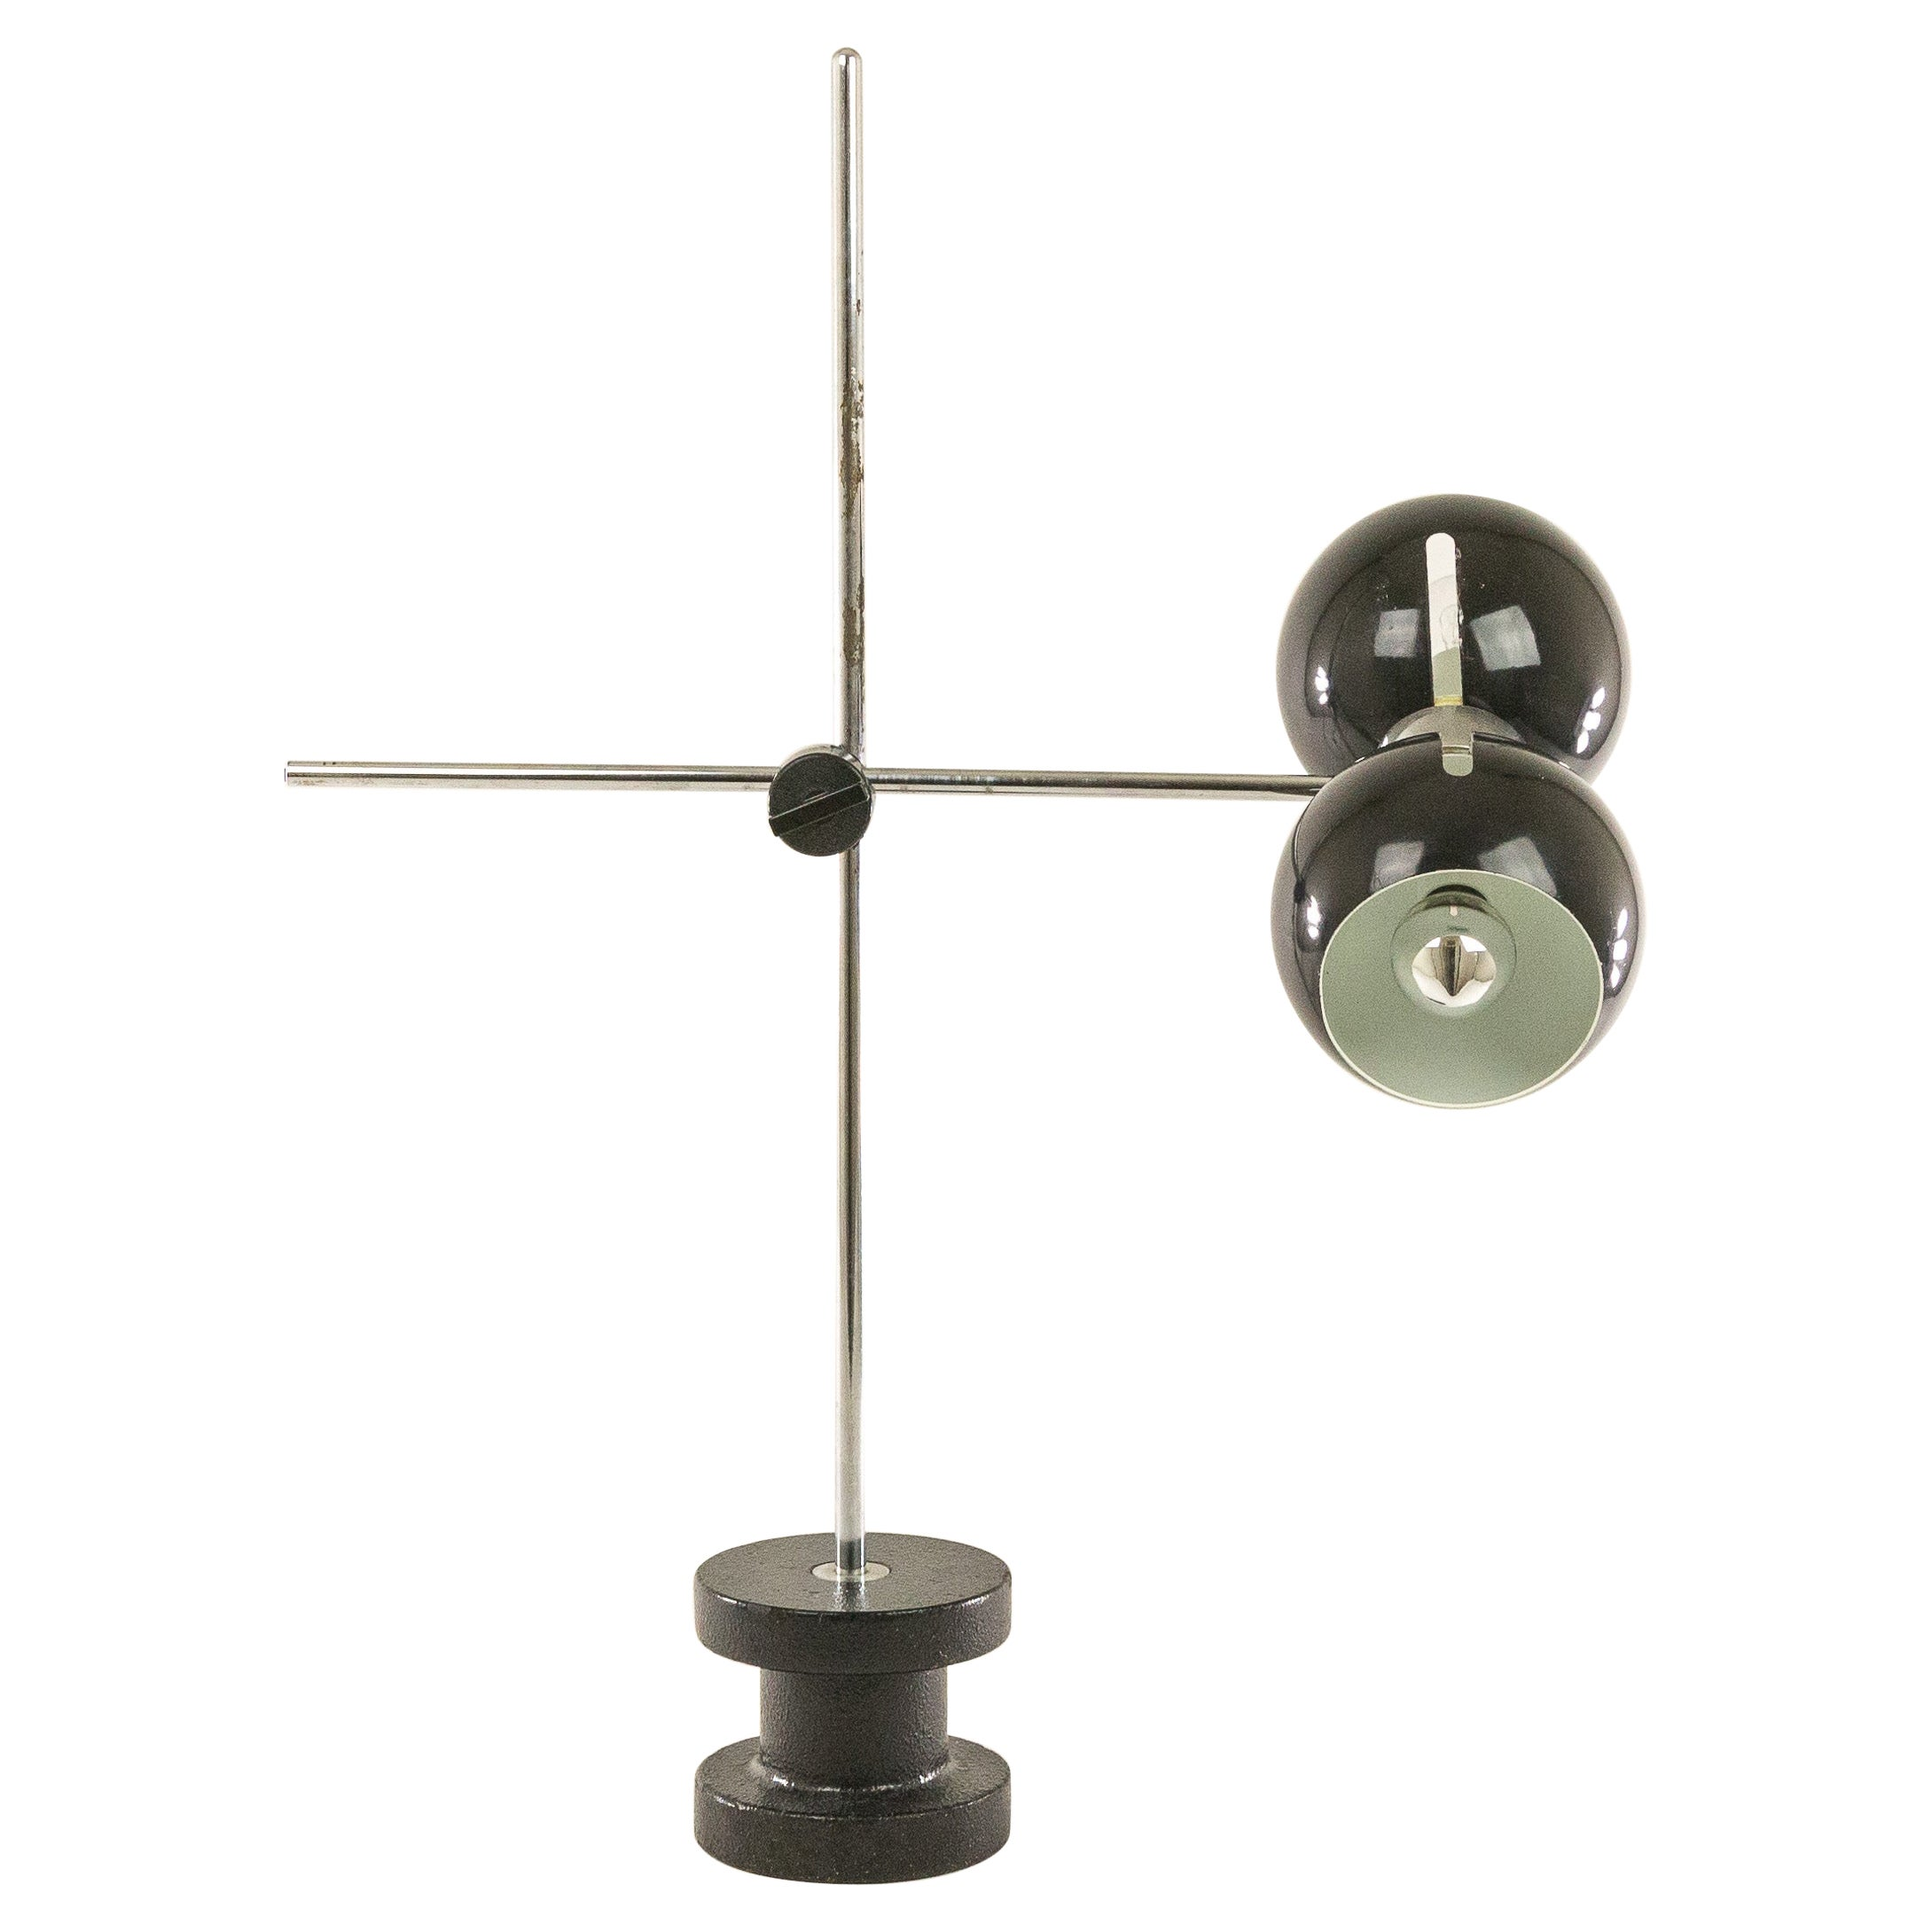 Adjustable Table Lamp with Cast Iron Base by Valenti, 1970s